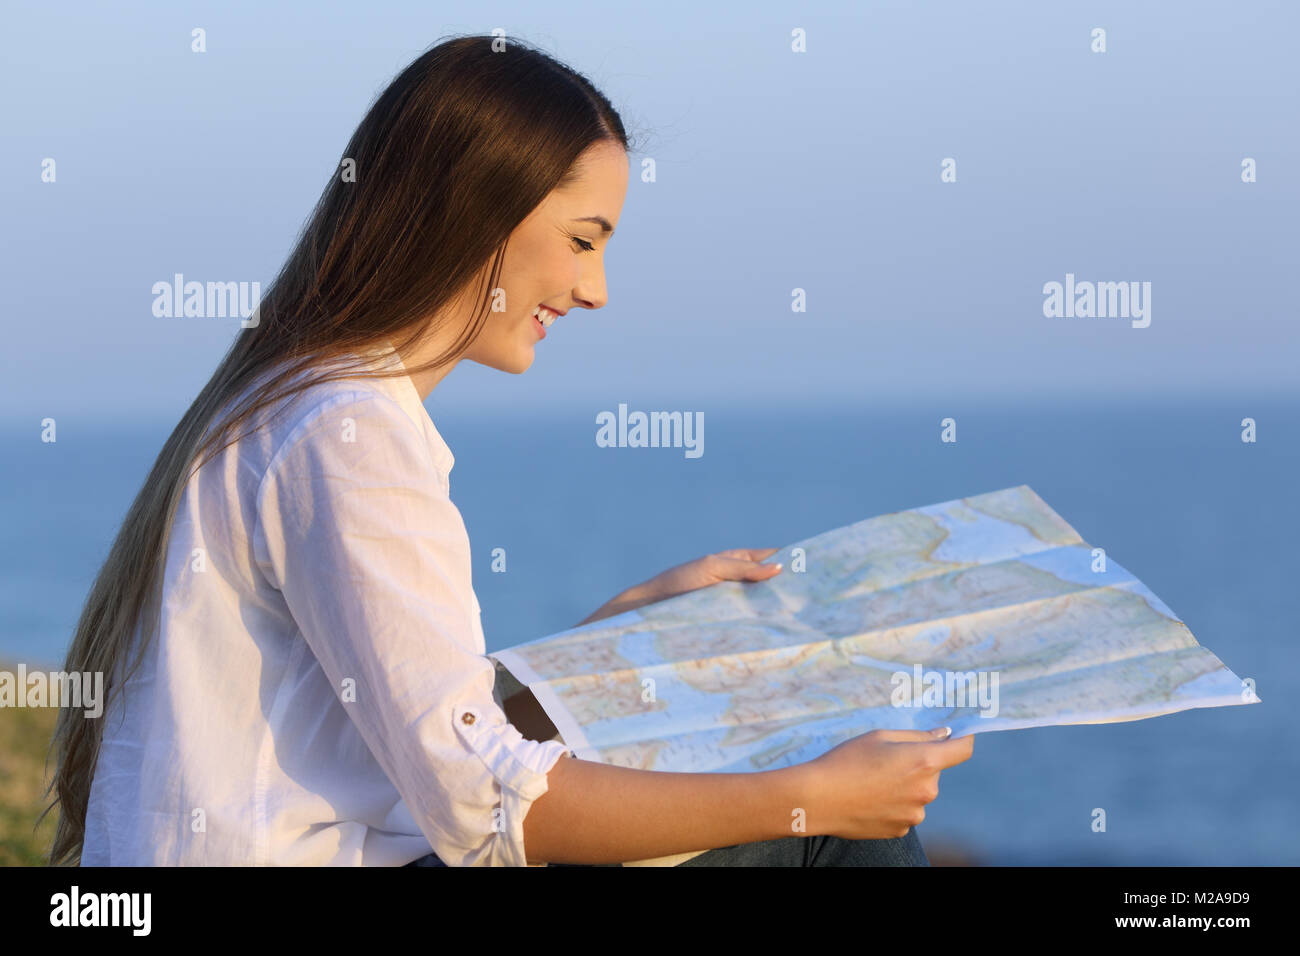 Profile of a happy tourist sitting on the grass consulting a guide map on the beach - Stock Image